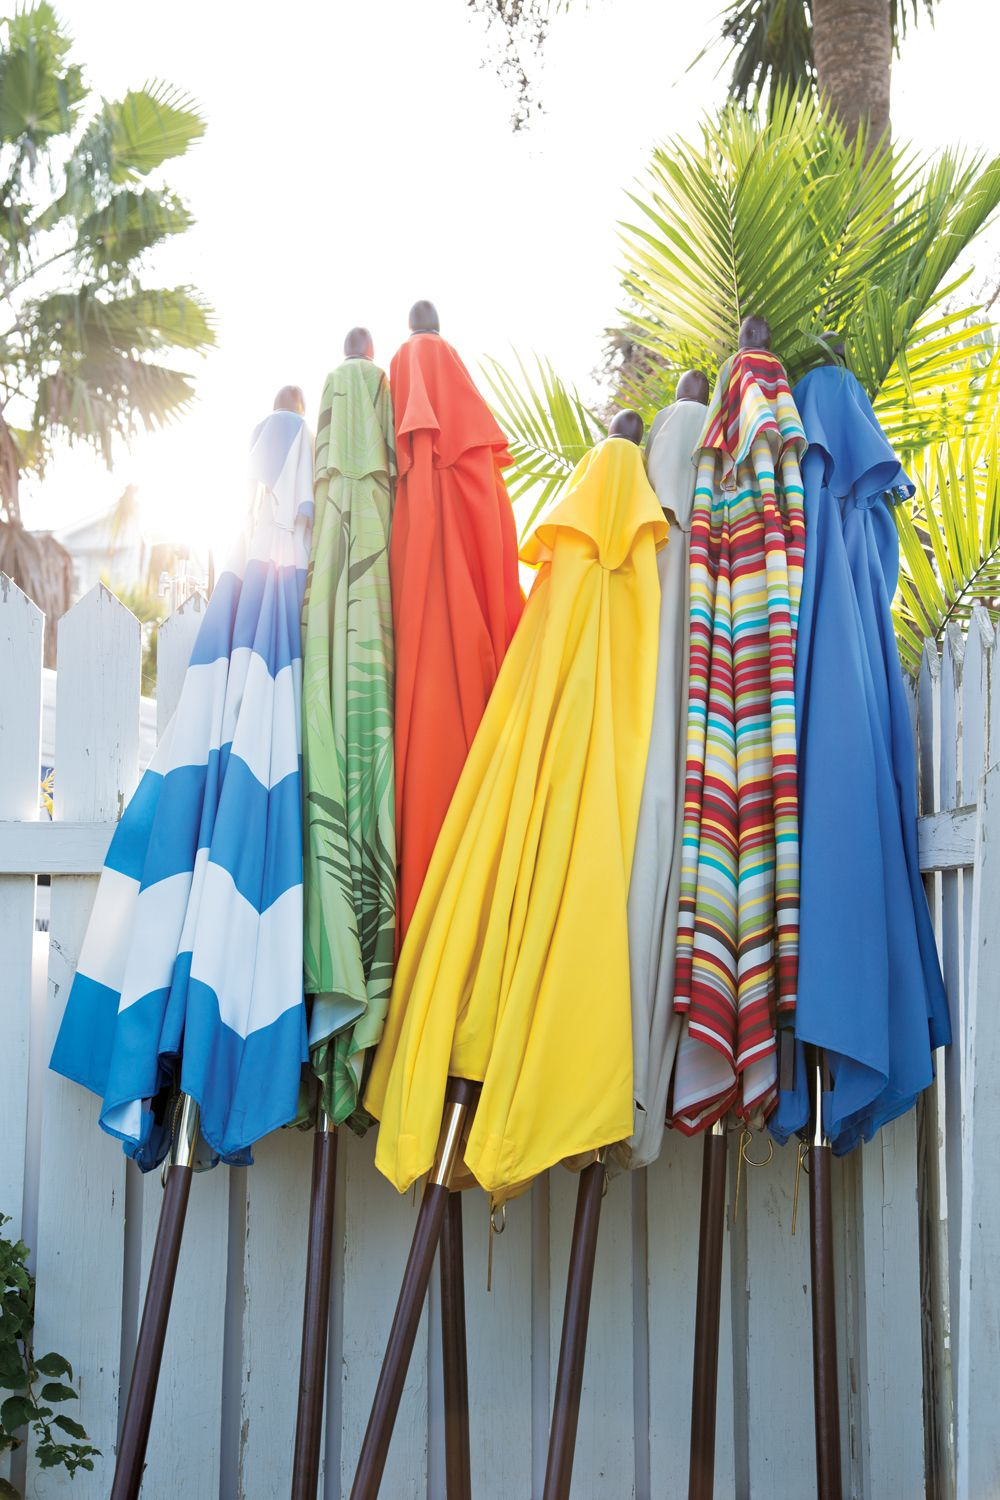 Cover up in colored #umbrellas from SONOMA outdoors. #Kohls